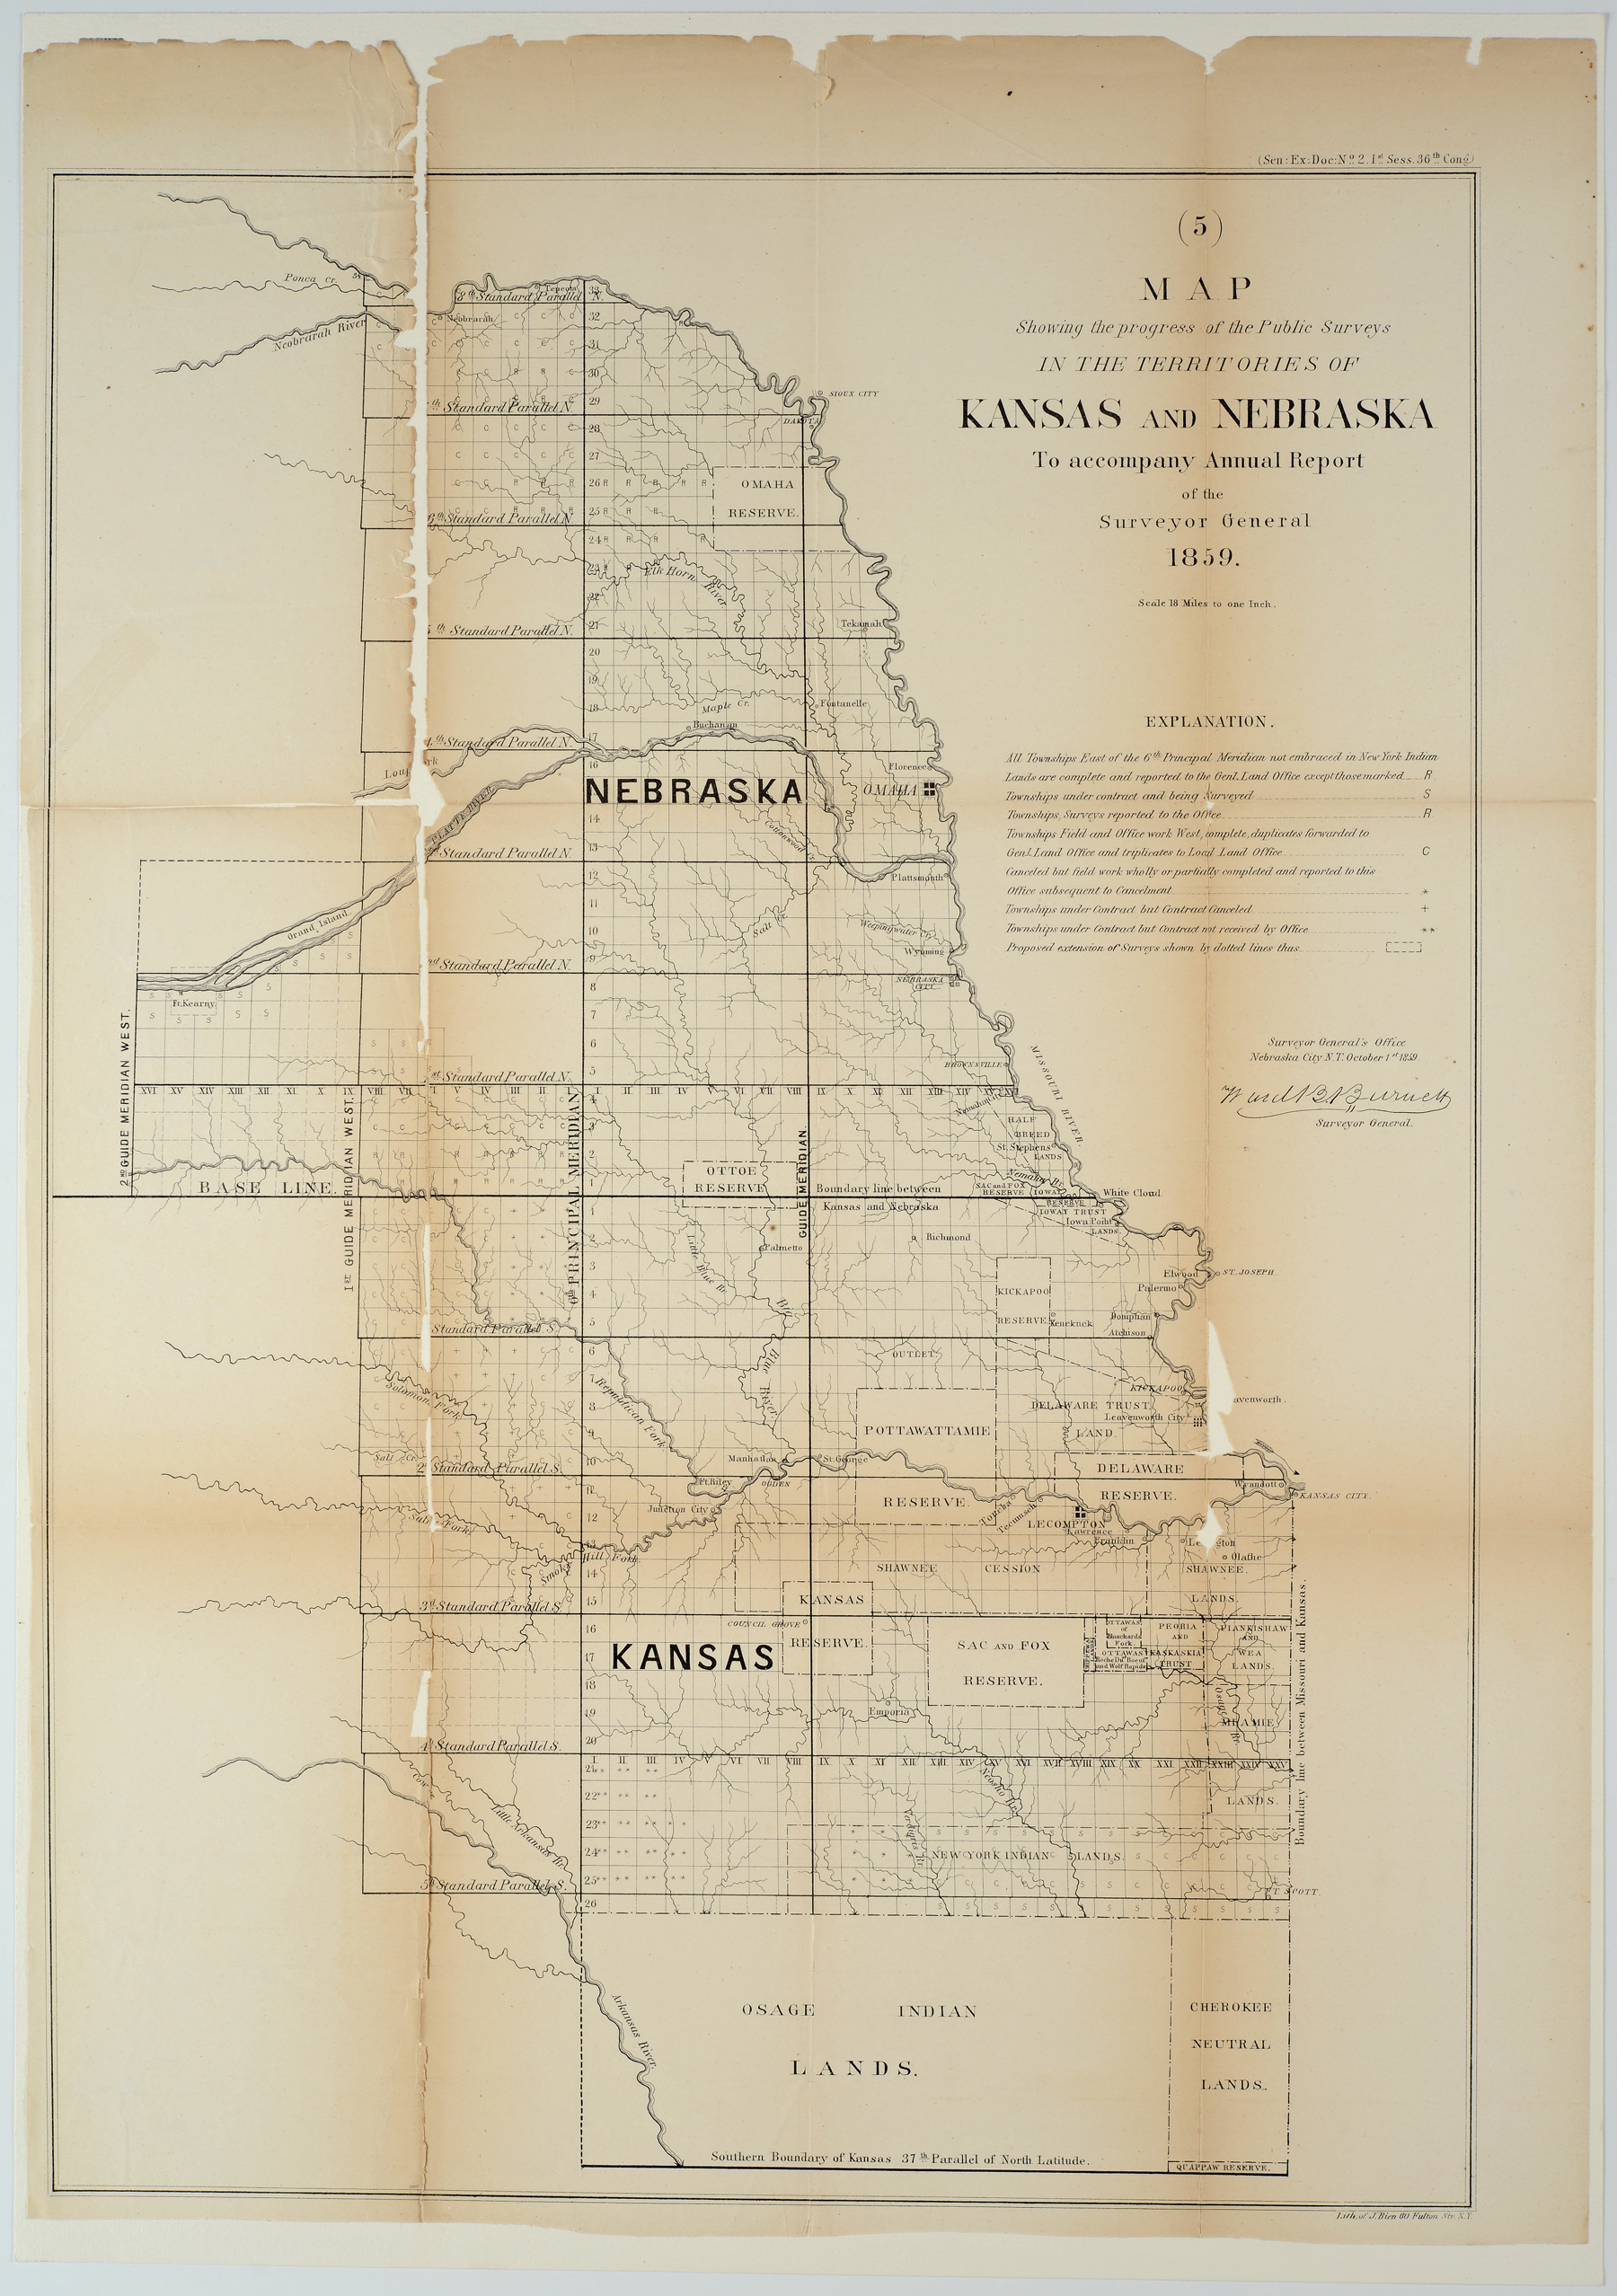 Map showing the progress of the Public Surveys in the Territories of Kansas and Nebraska